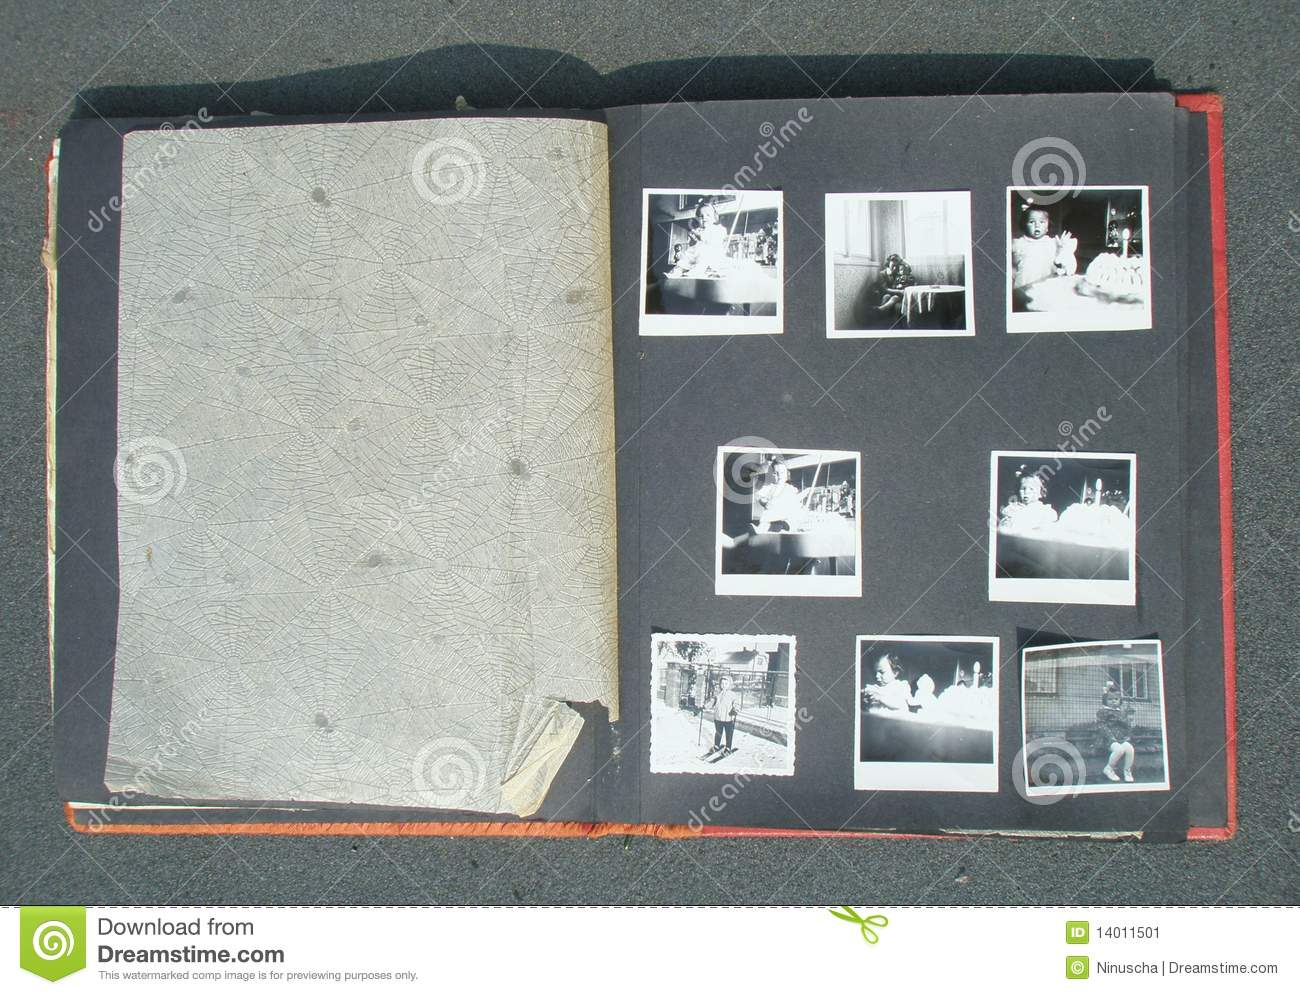 Bien connu Retro Photo Album Stock Image - Image: 14011501 PX73